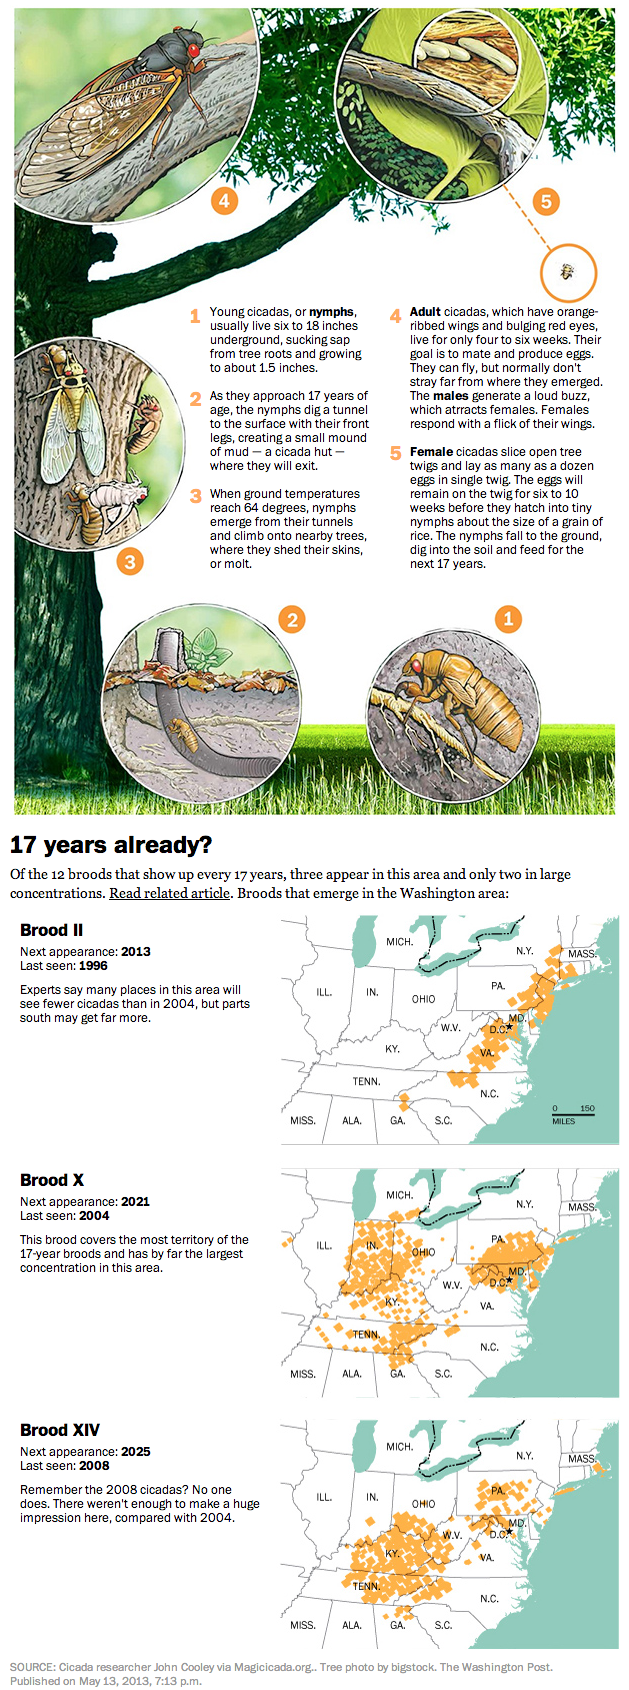 The Washington Post's explanation of the periodical cicadas